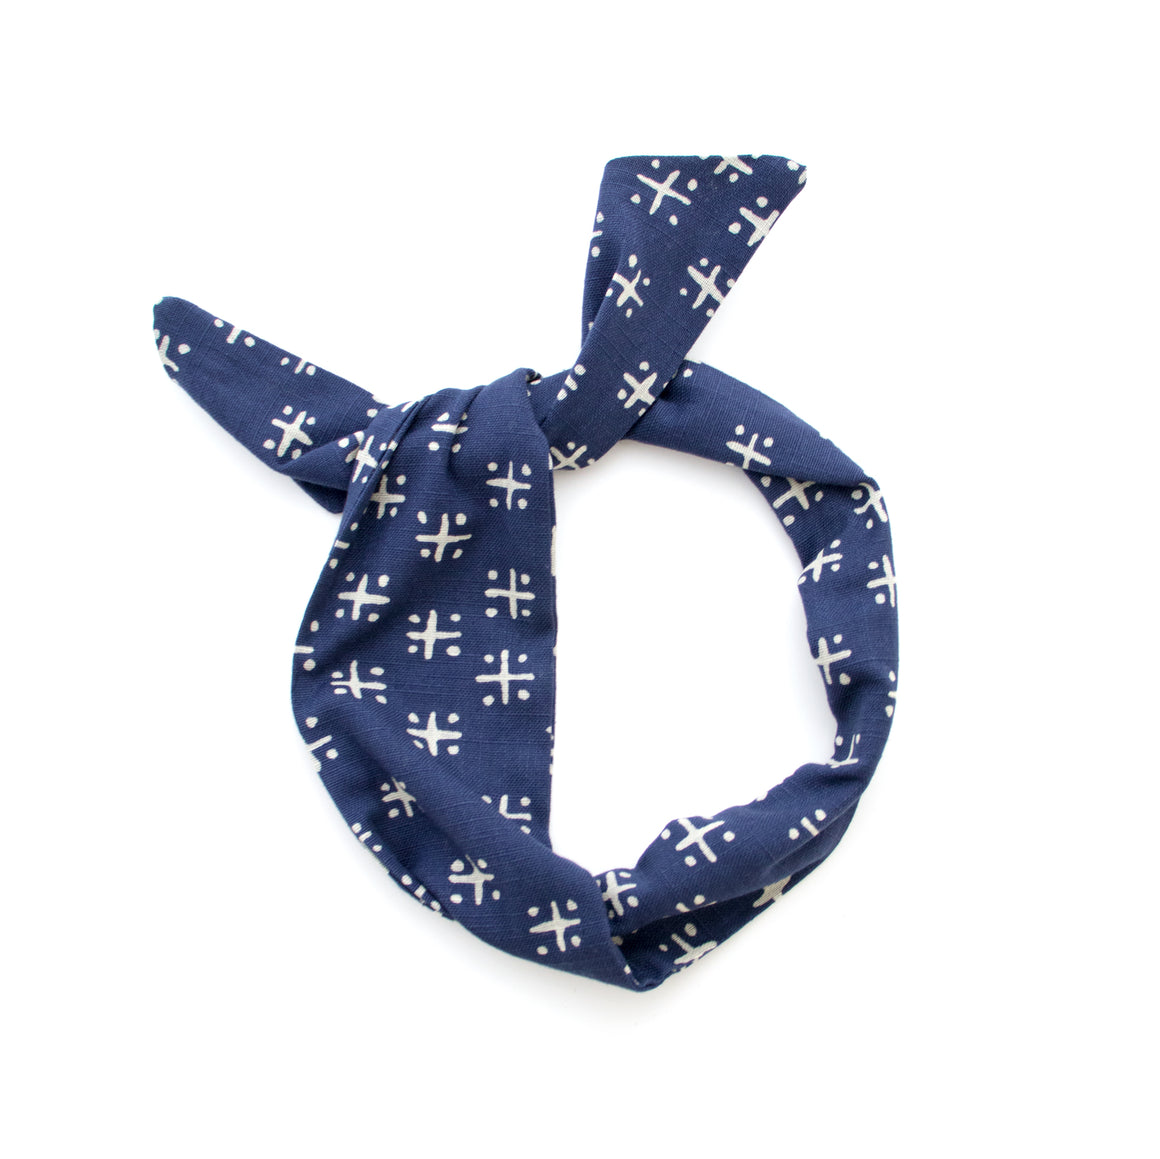 navy plus sign wire headband